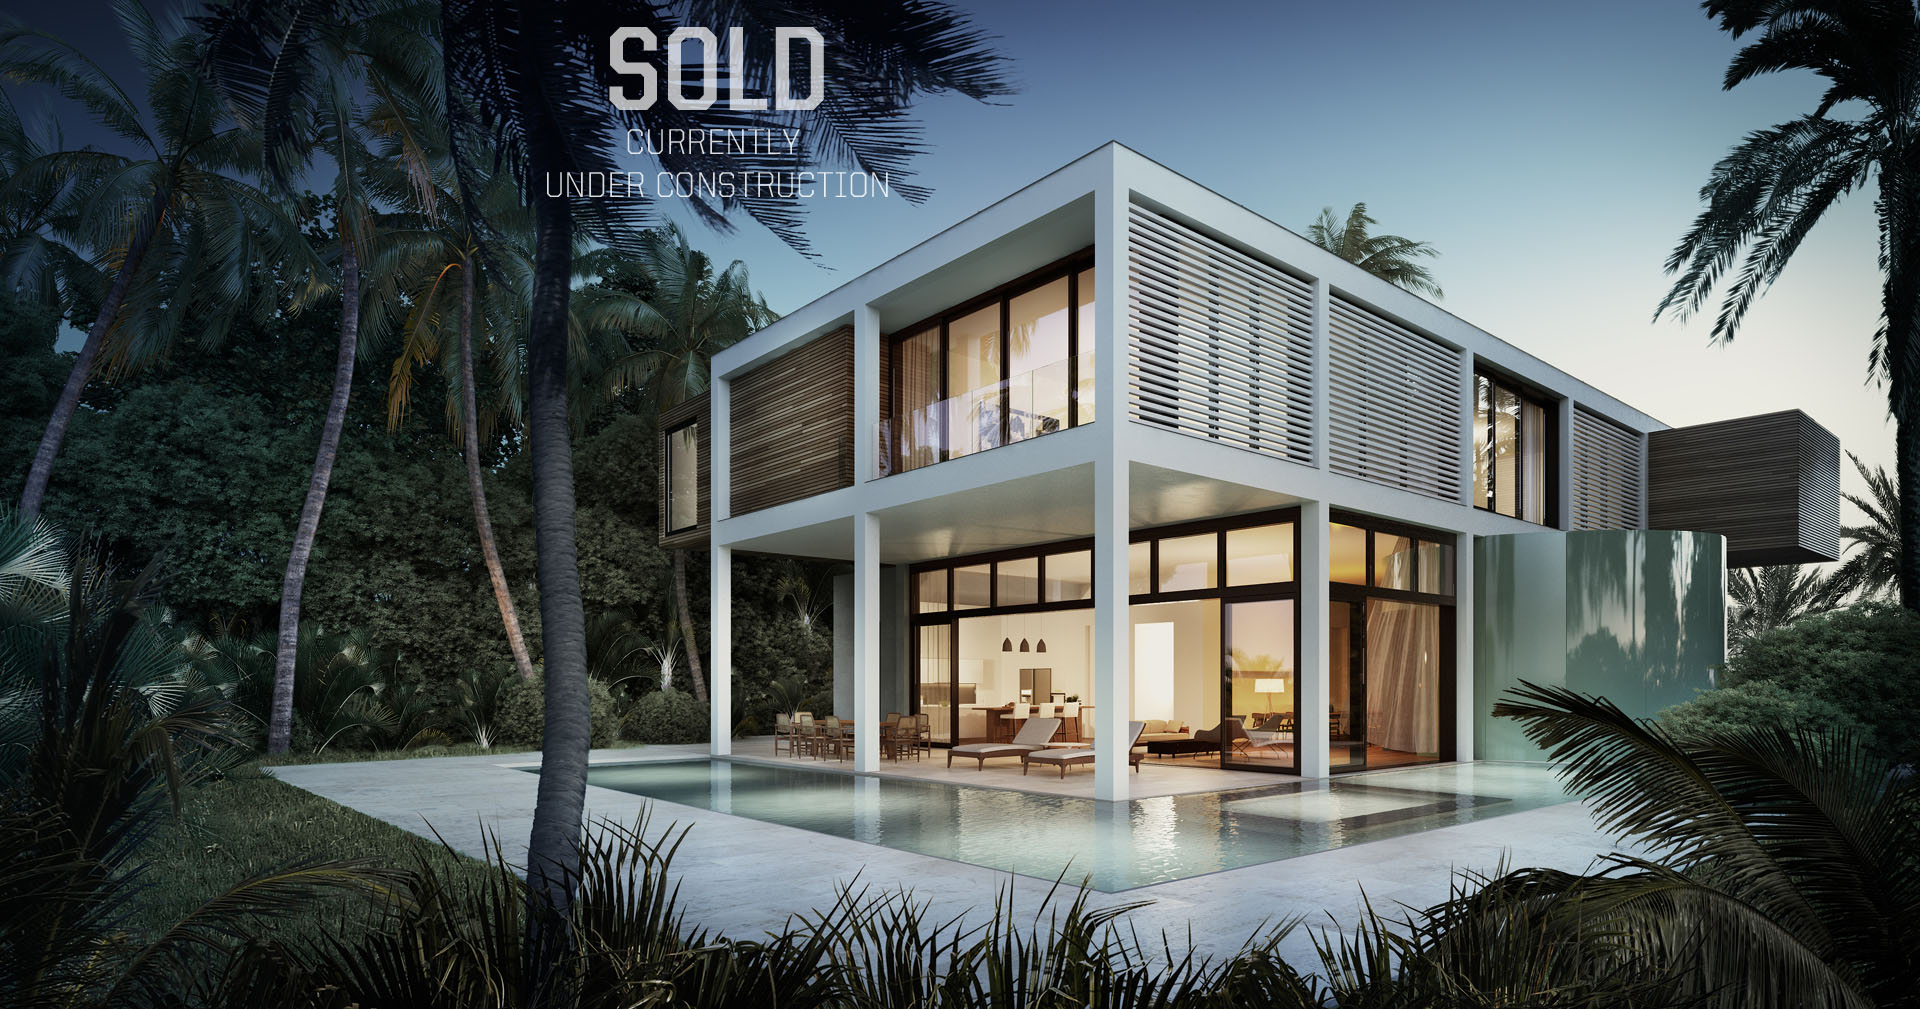 240 golden properties for Beach house designs south haven mi